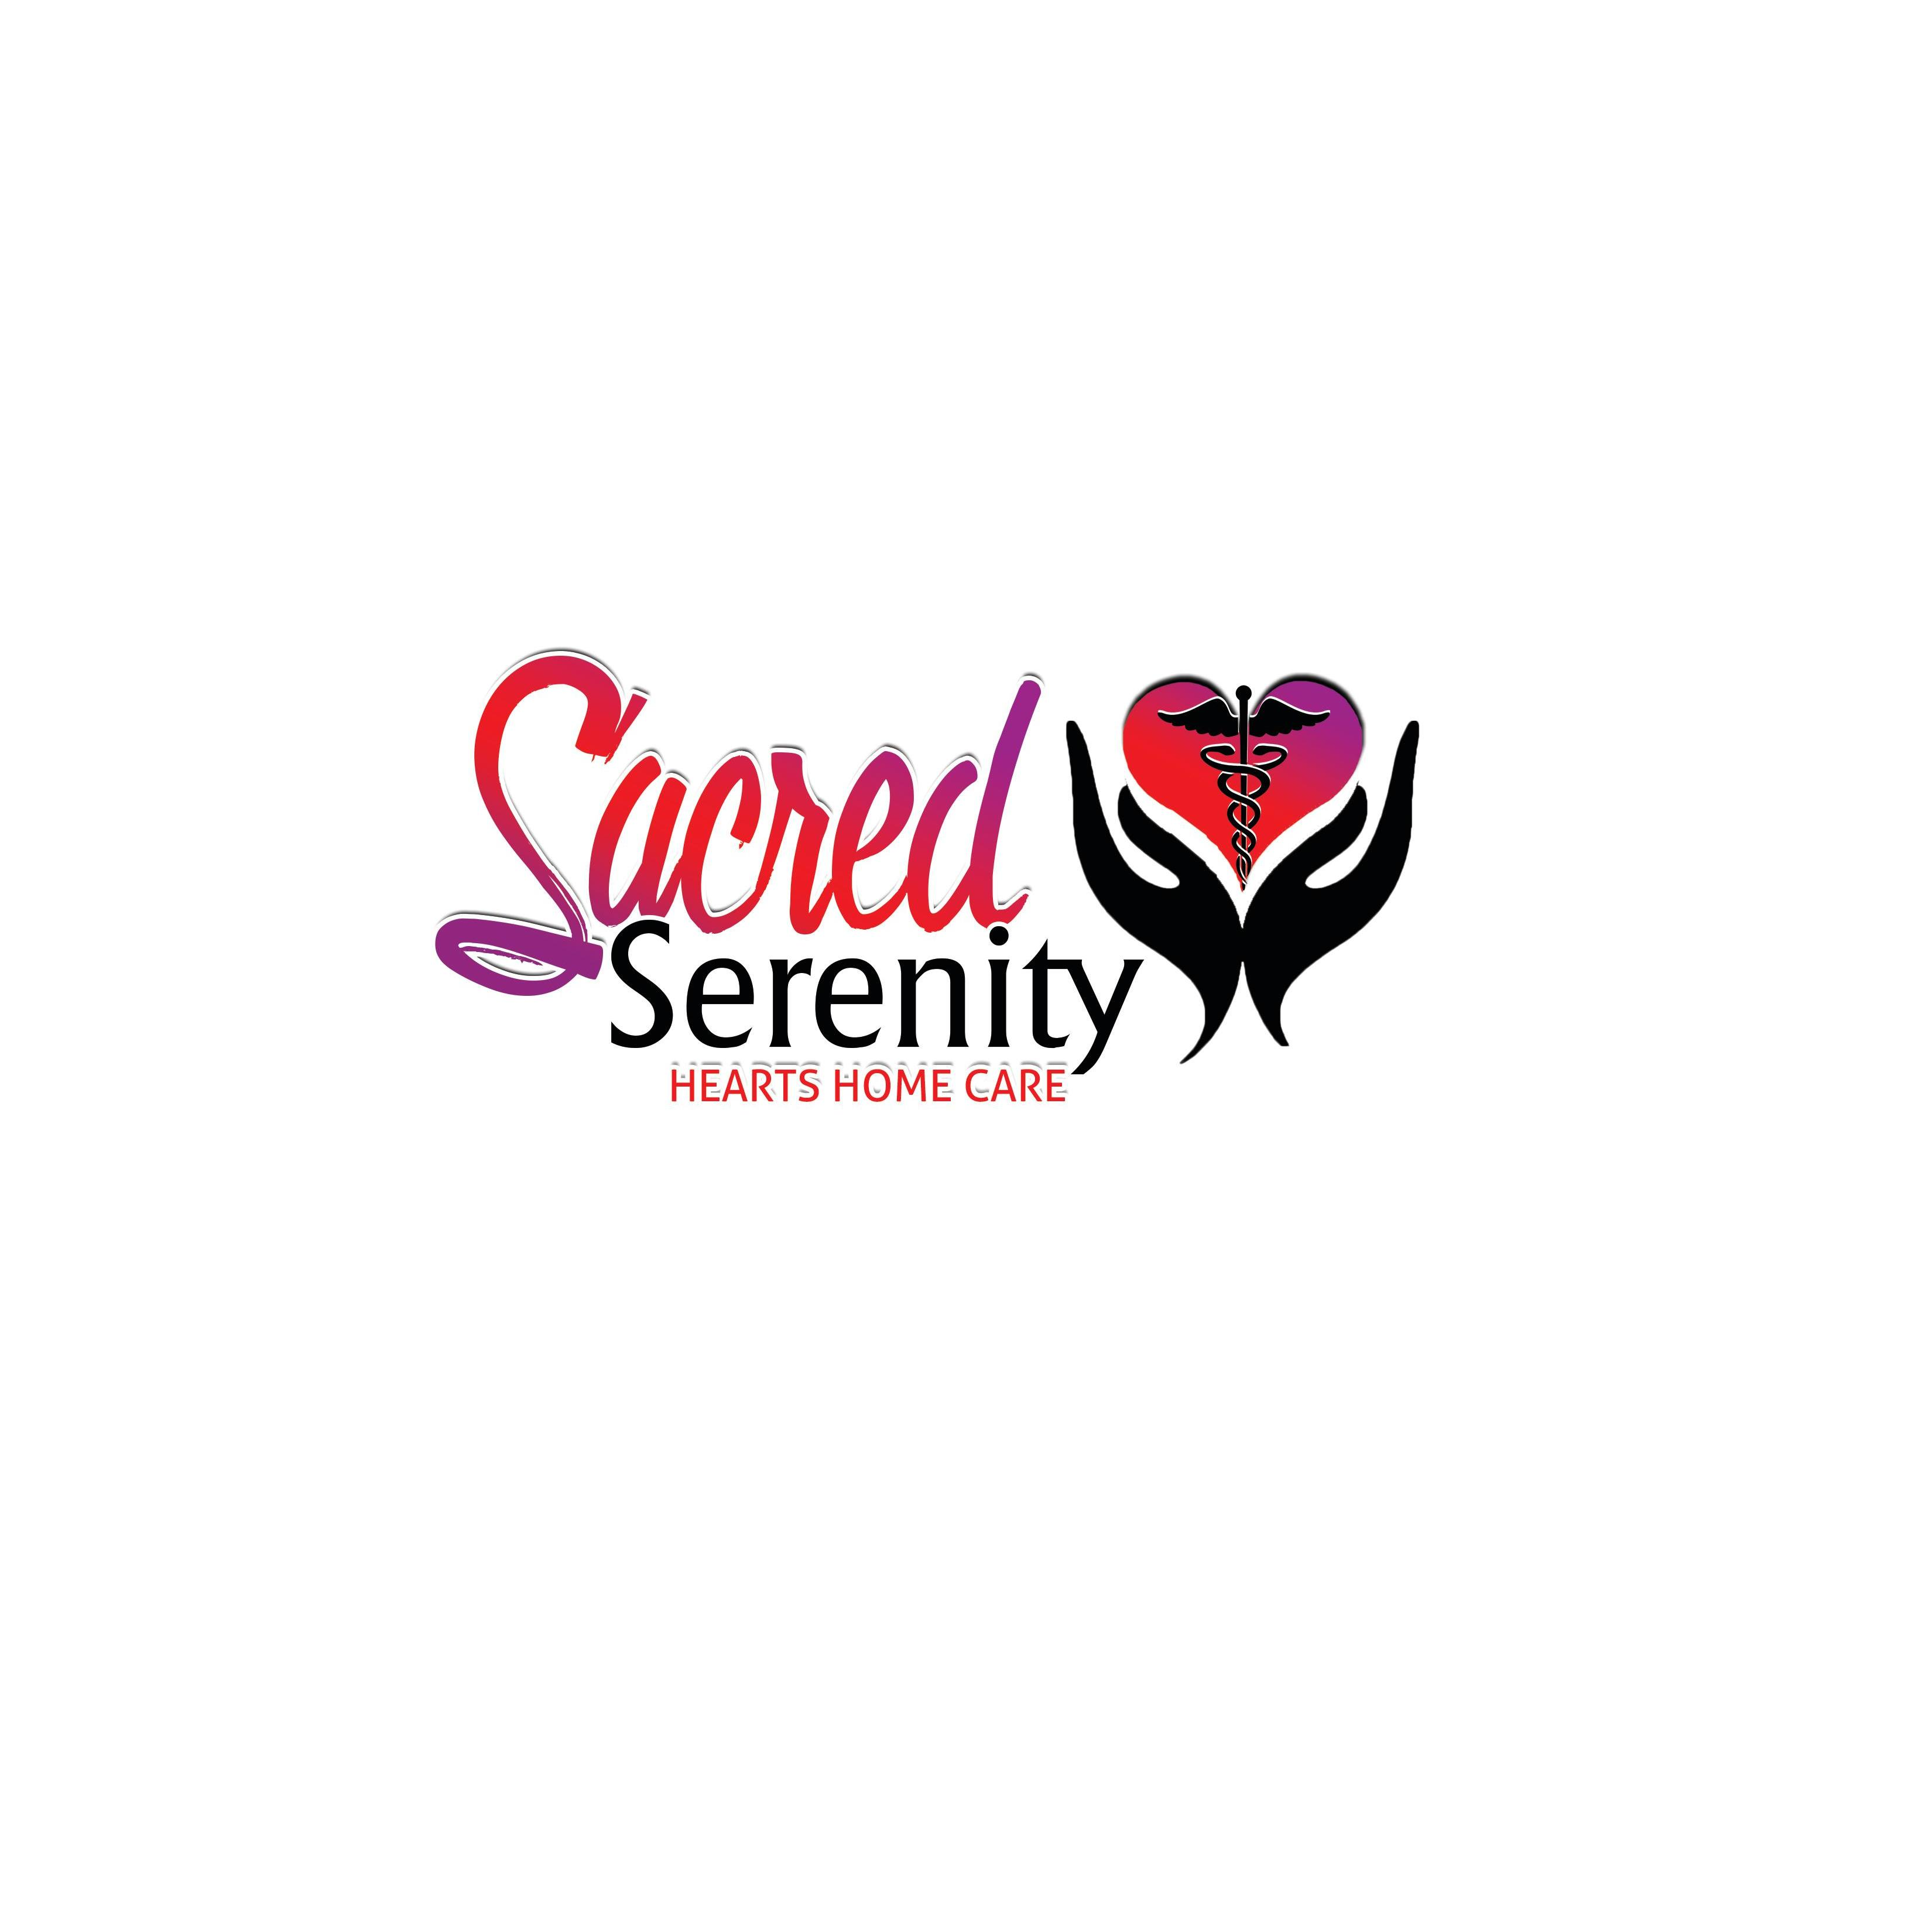 Sacred Serenity Hearts Home Care Lawrenceville Georgia